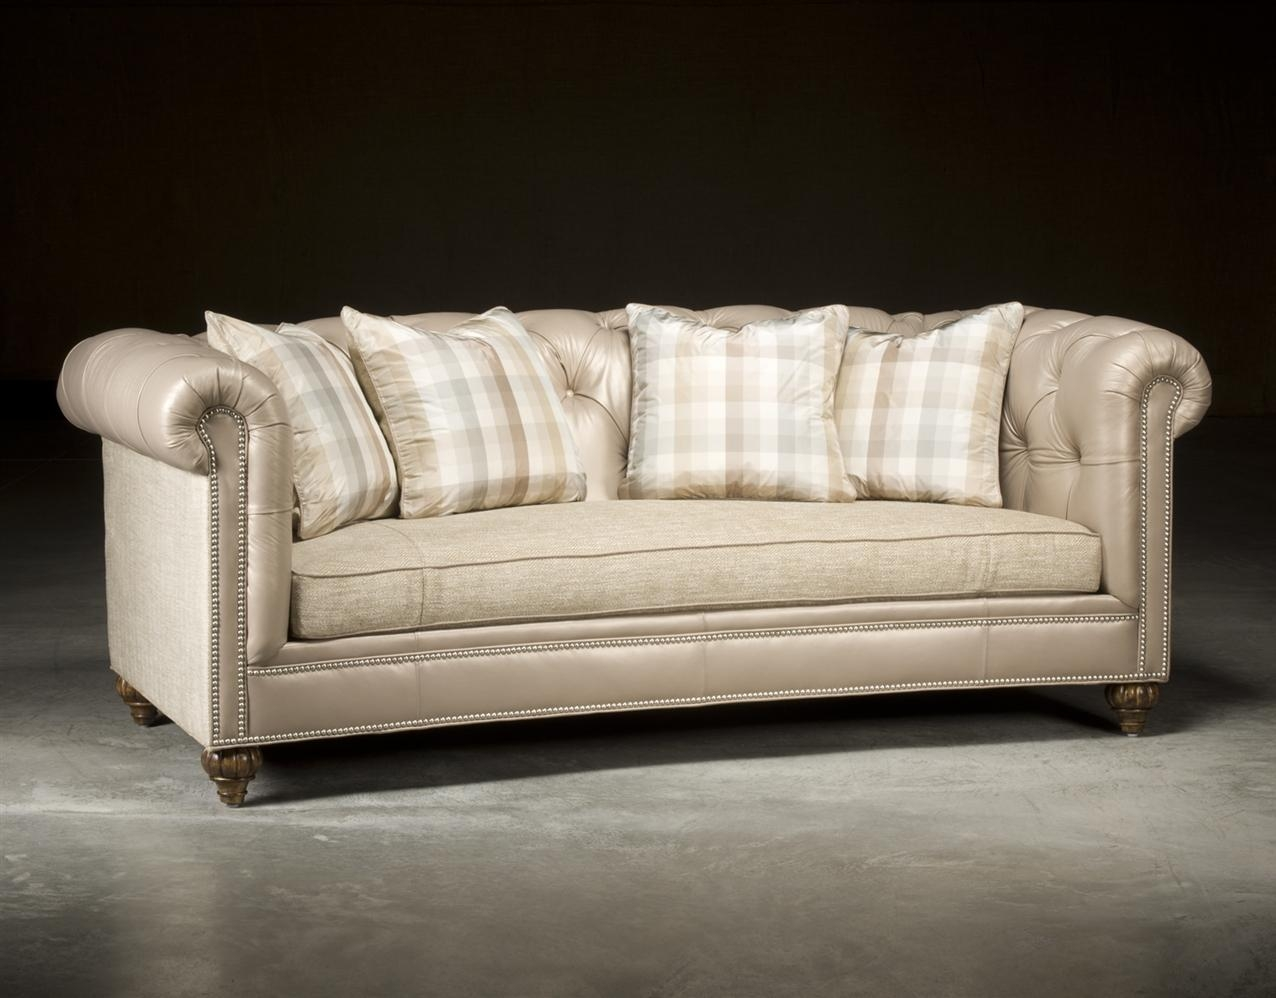 Chesterfield Tufted Sofa, High End Upholstered Furniture Pertaining To High End Sofa (View 2 of 20)